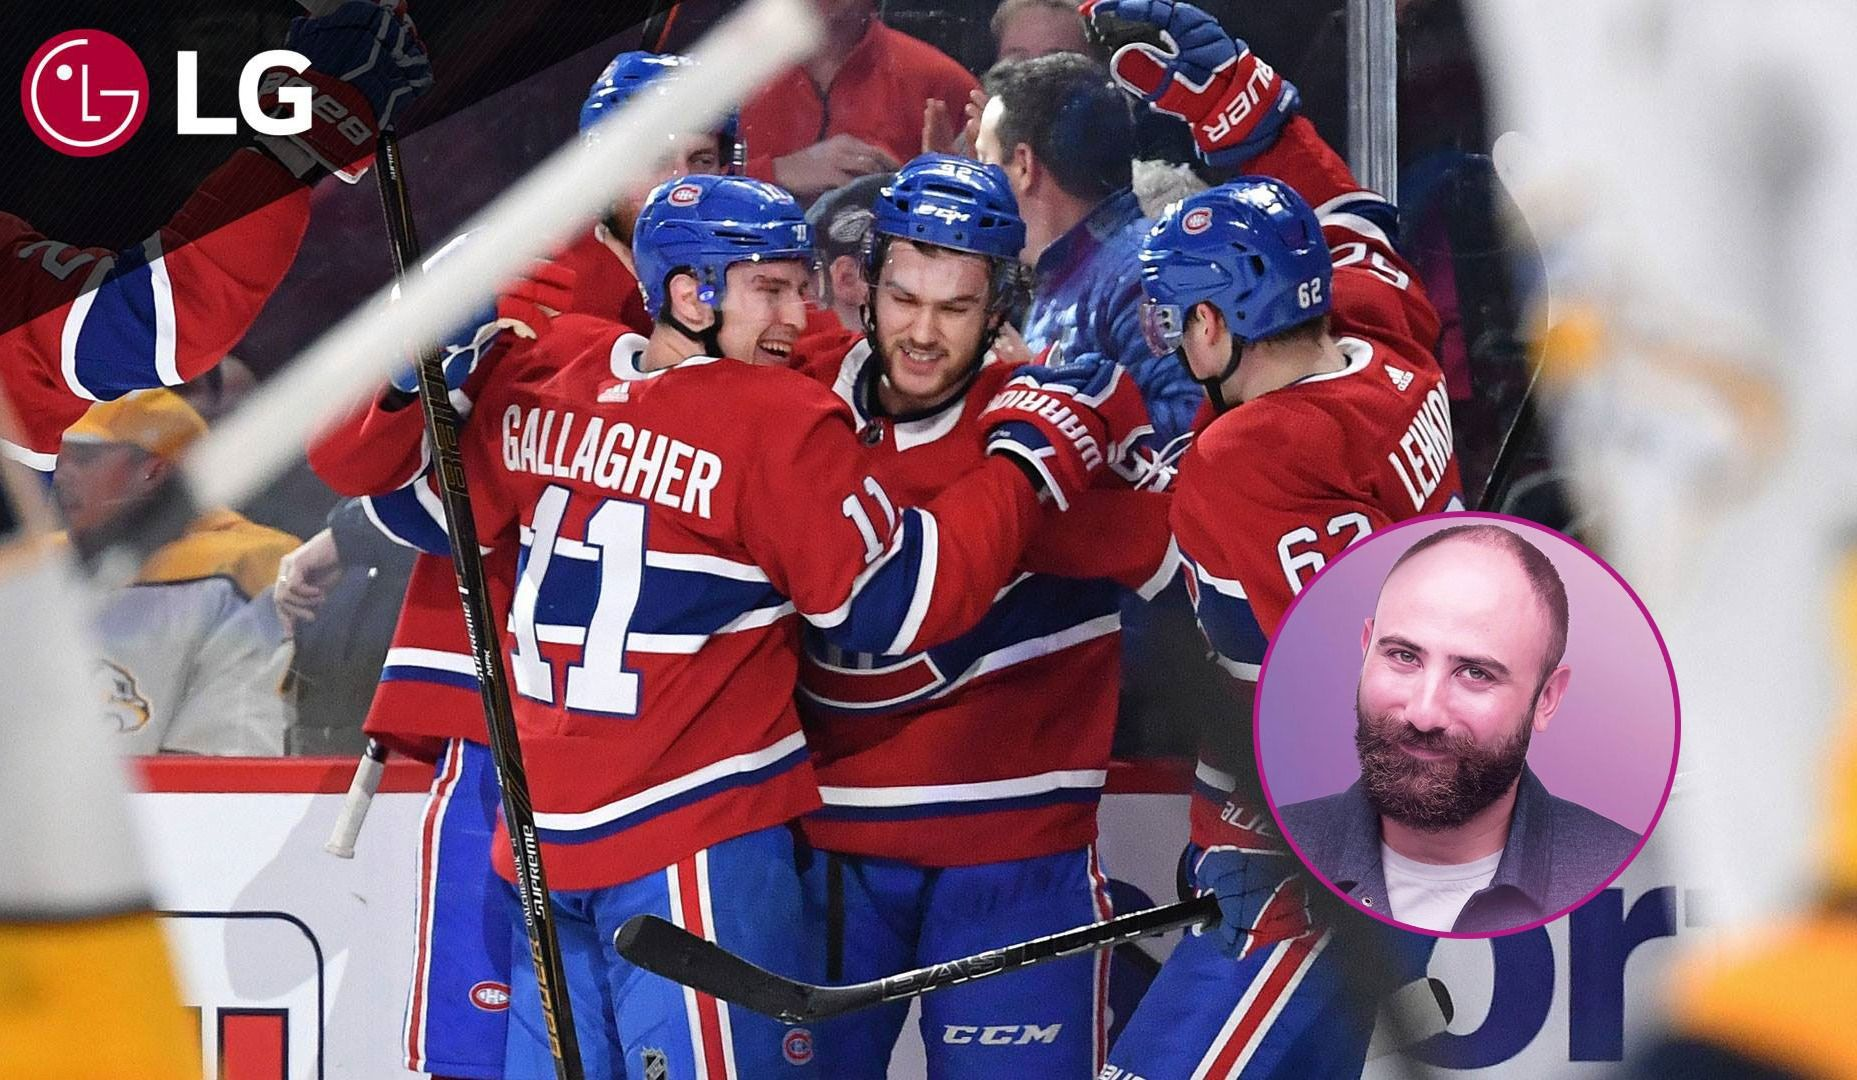 Sam's Two Cents - Should we Boycott the Habs?